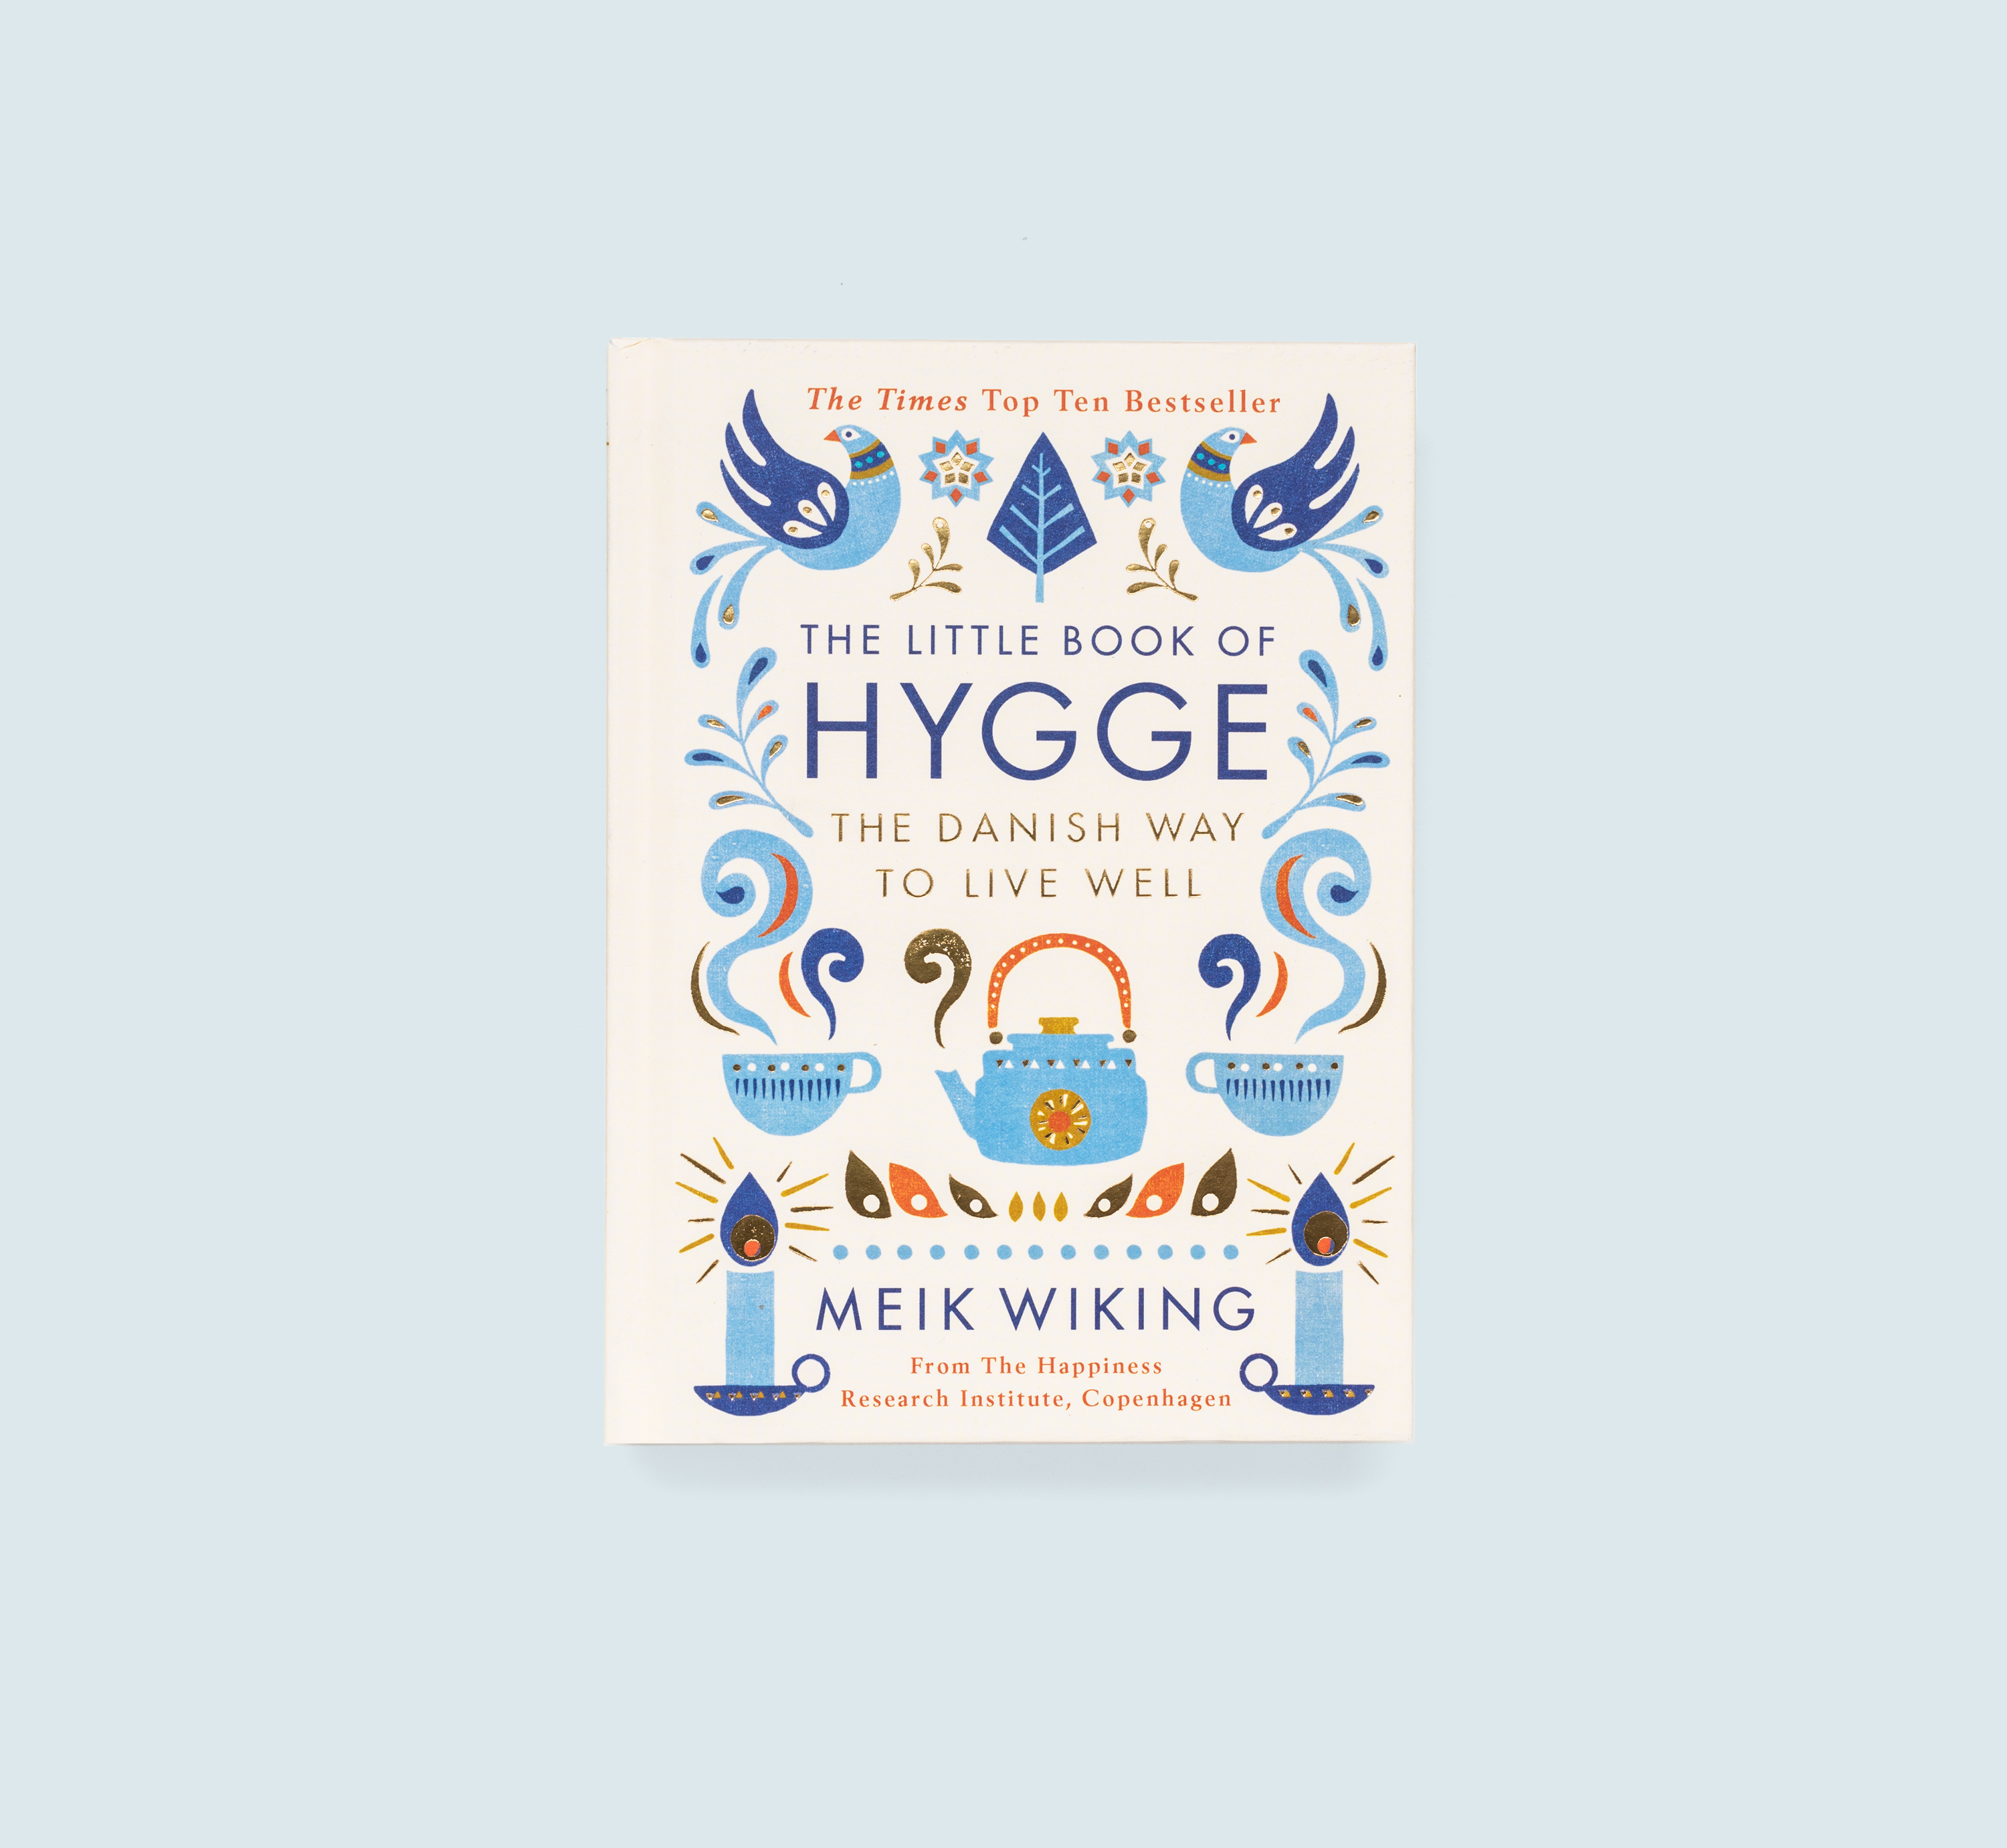 Little book of Hygge by Meik Wiking on Bookblock